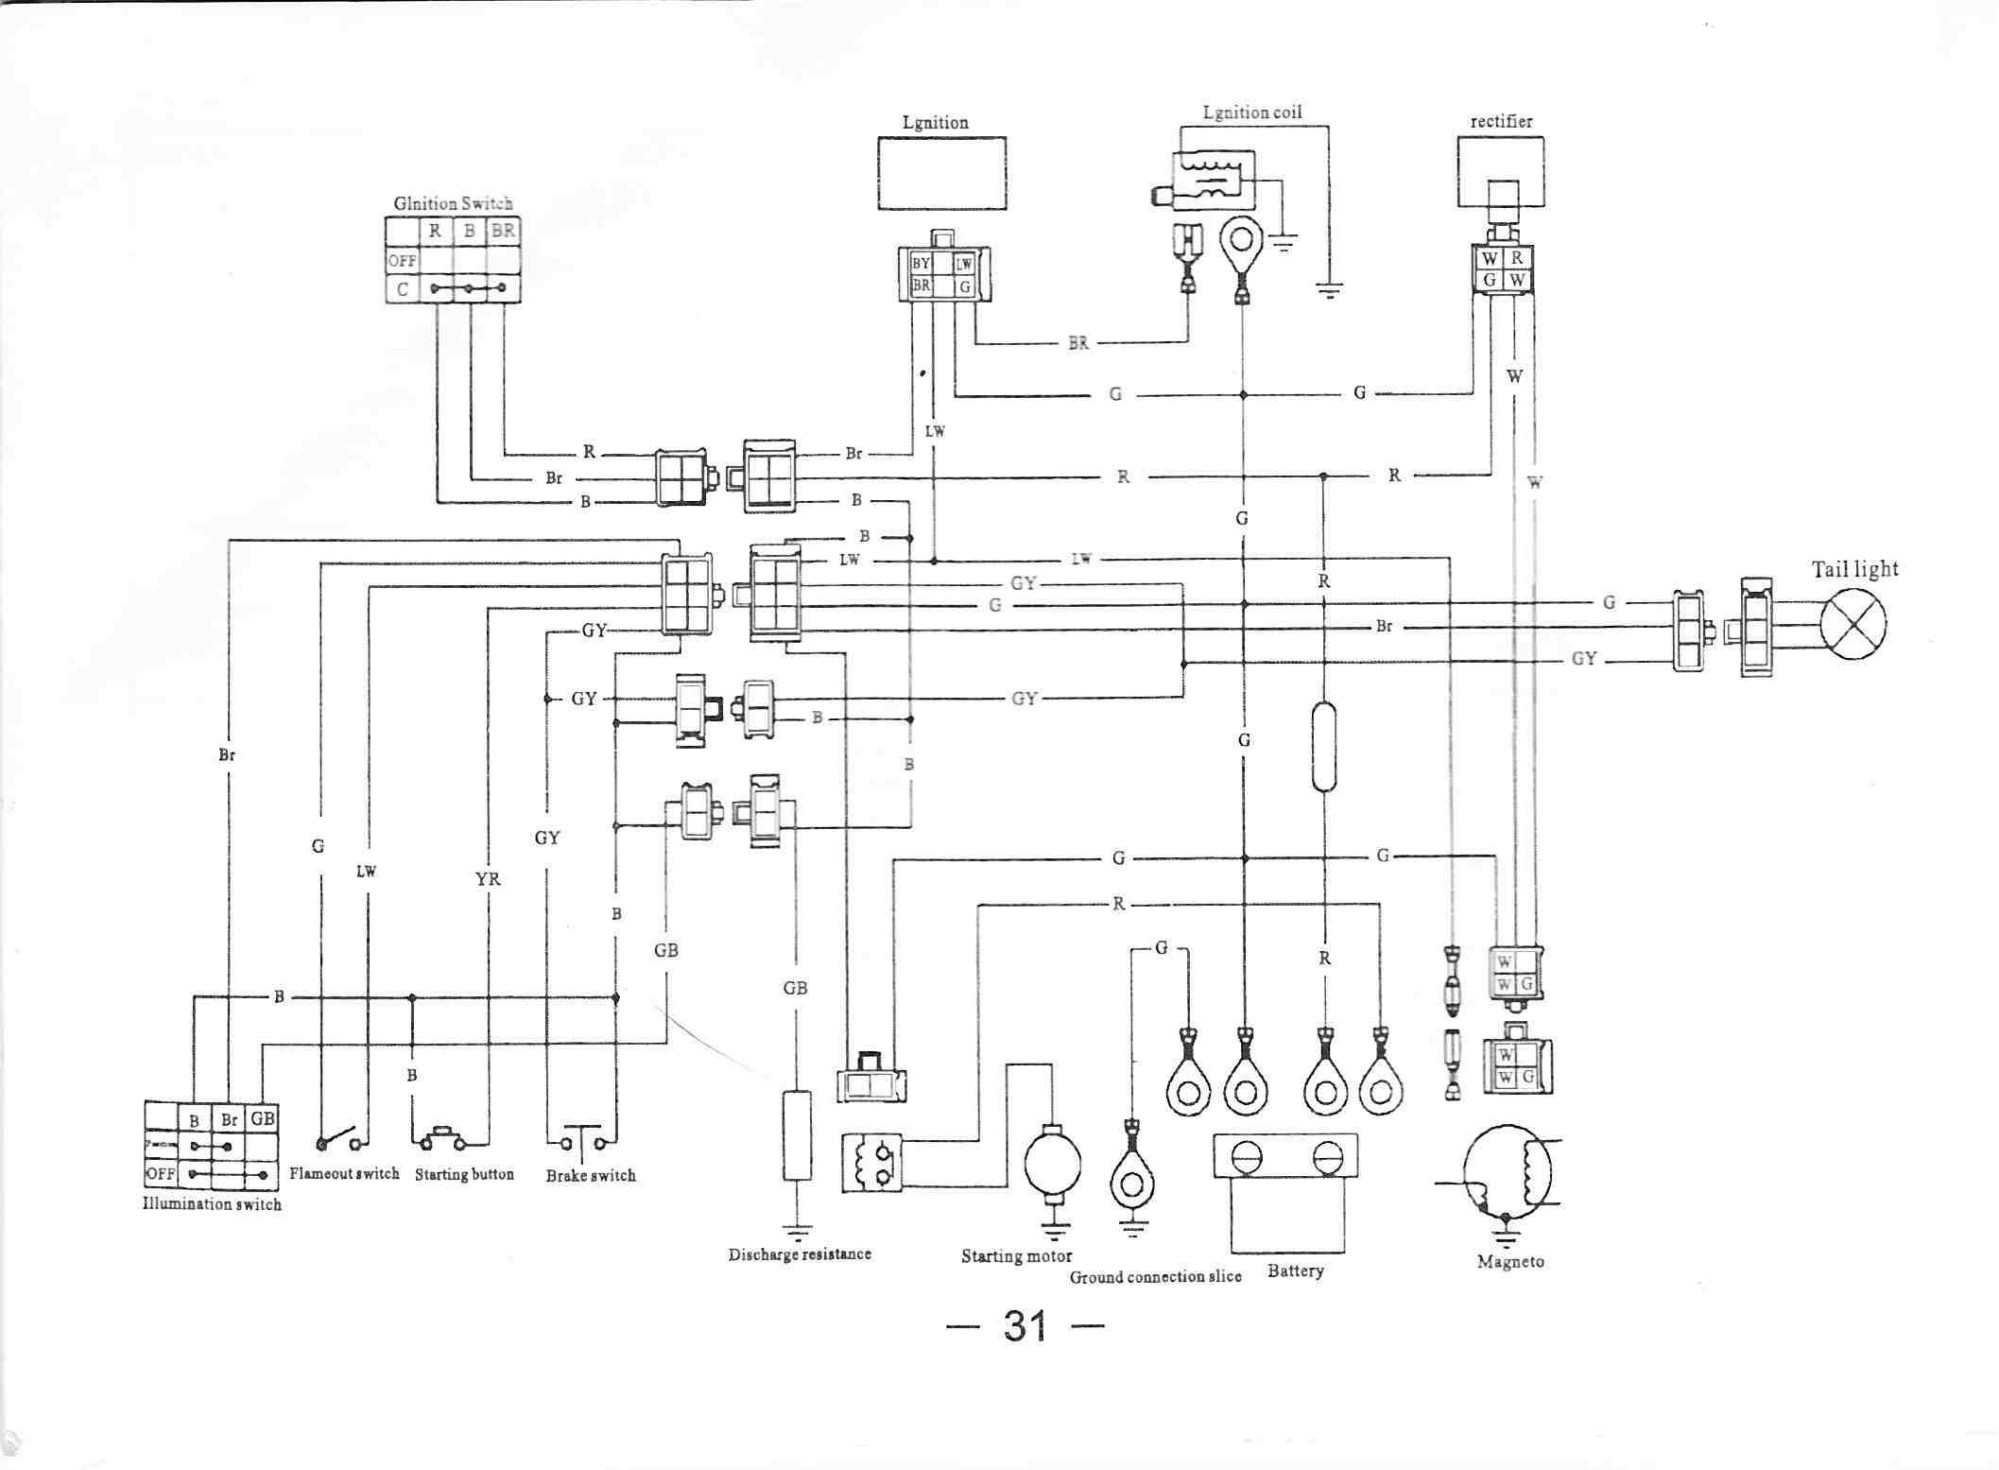 hight resolution of 2001 yamaha bear tracker wiring diagram wiring diagram third level2004 yamaha bear tracker wiring diagram wiring